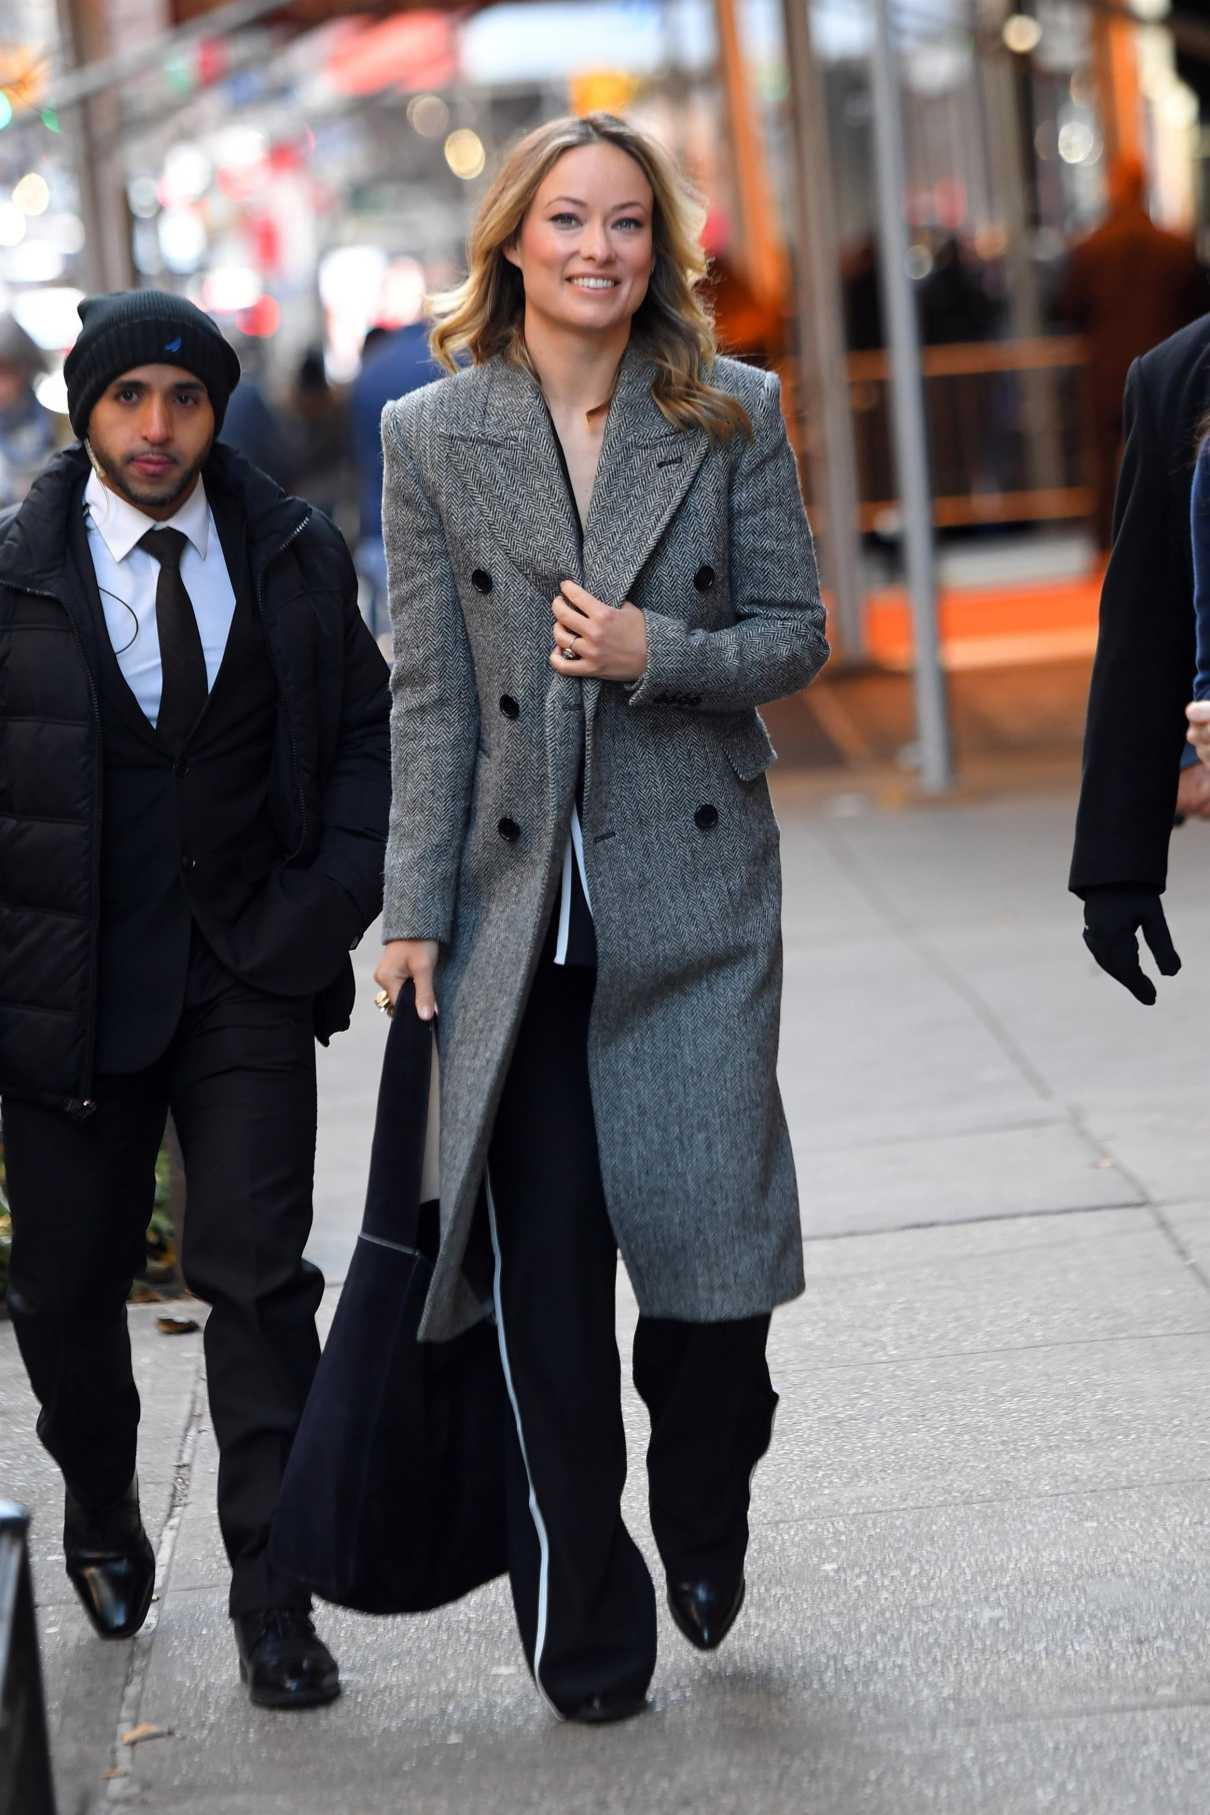 Olivia Wilde in a Gray Coat